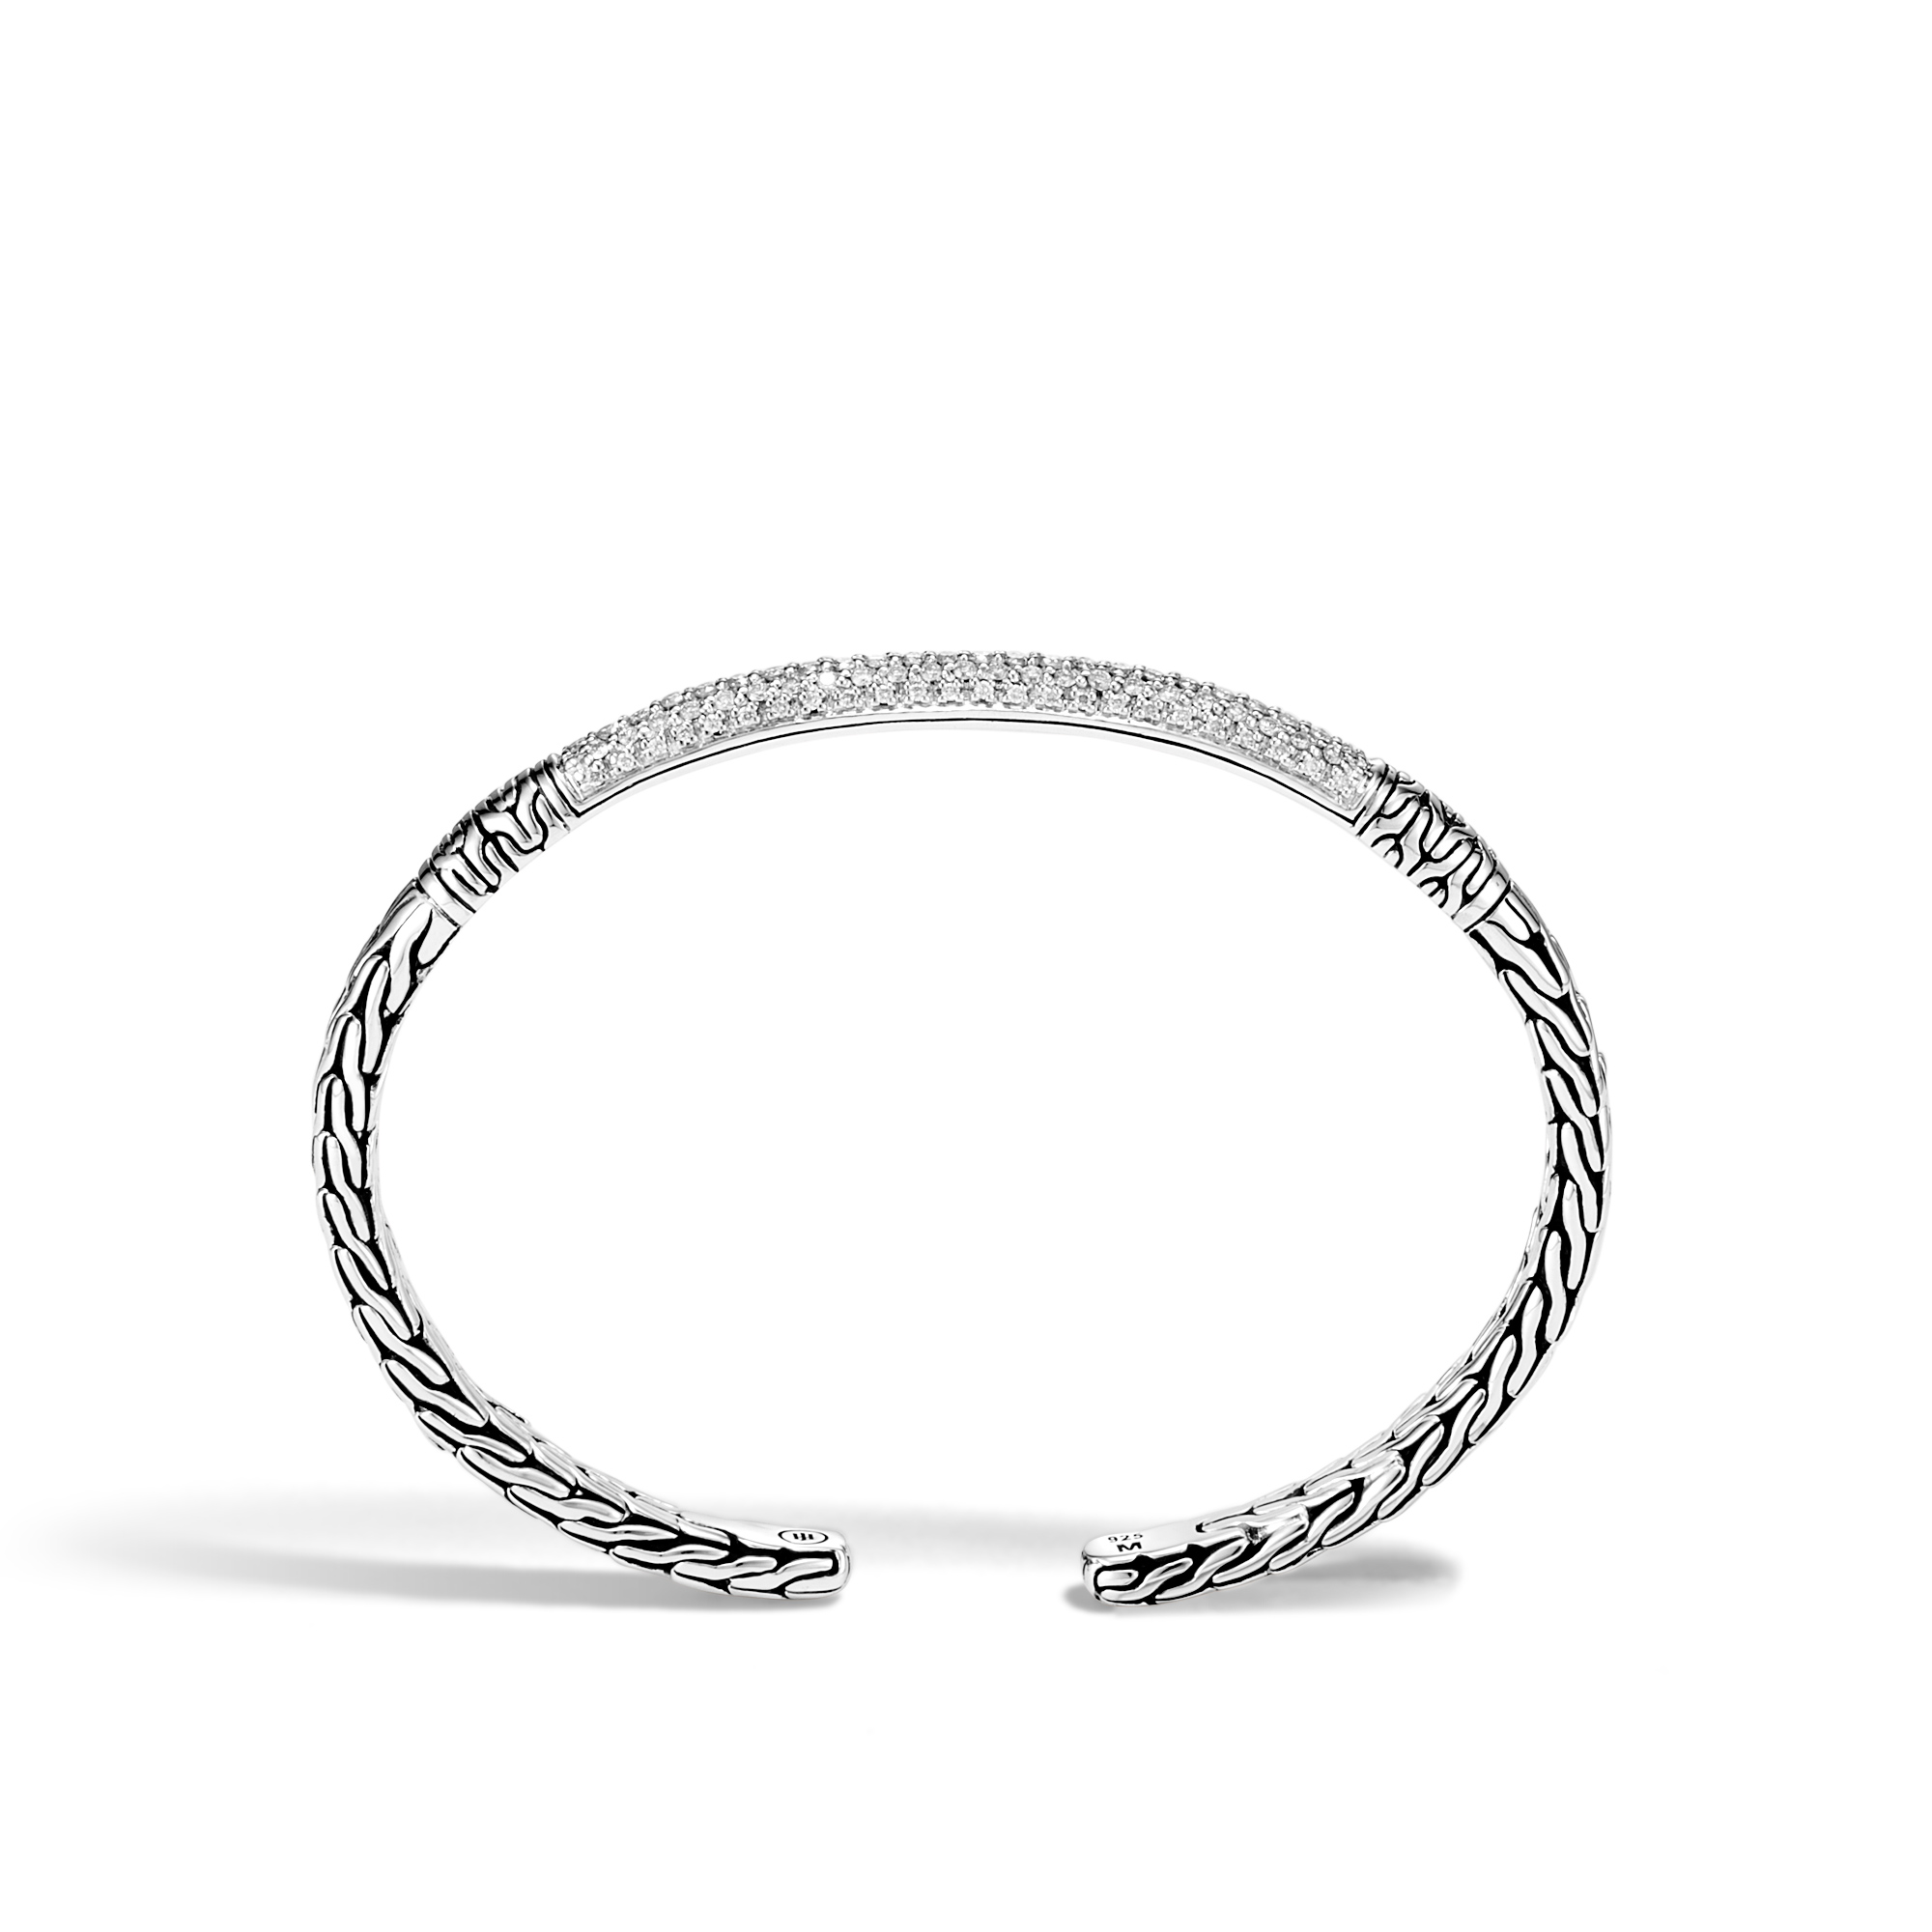 Classic Chain Cuff in Silver with Diamond, White Diamond, large